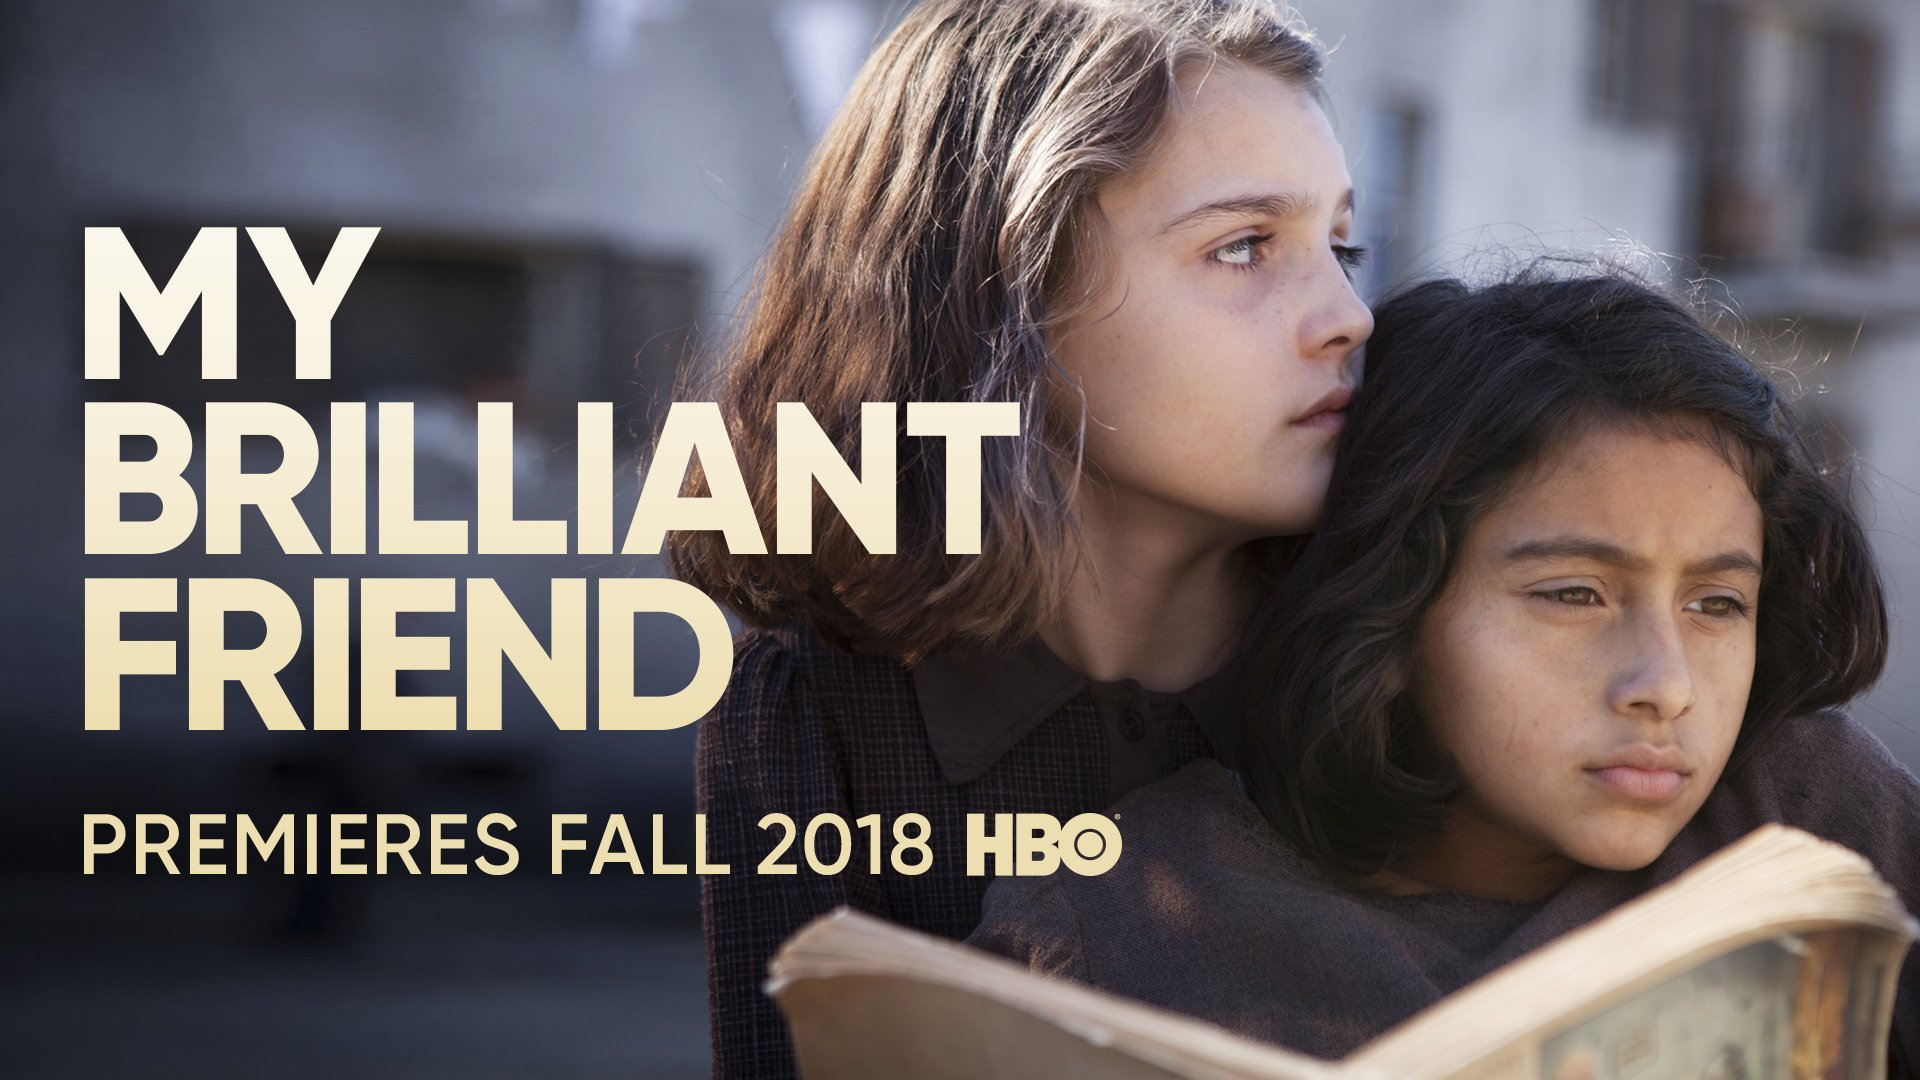 HBO's My Brilliant Friend; Based On The Book Series By